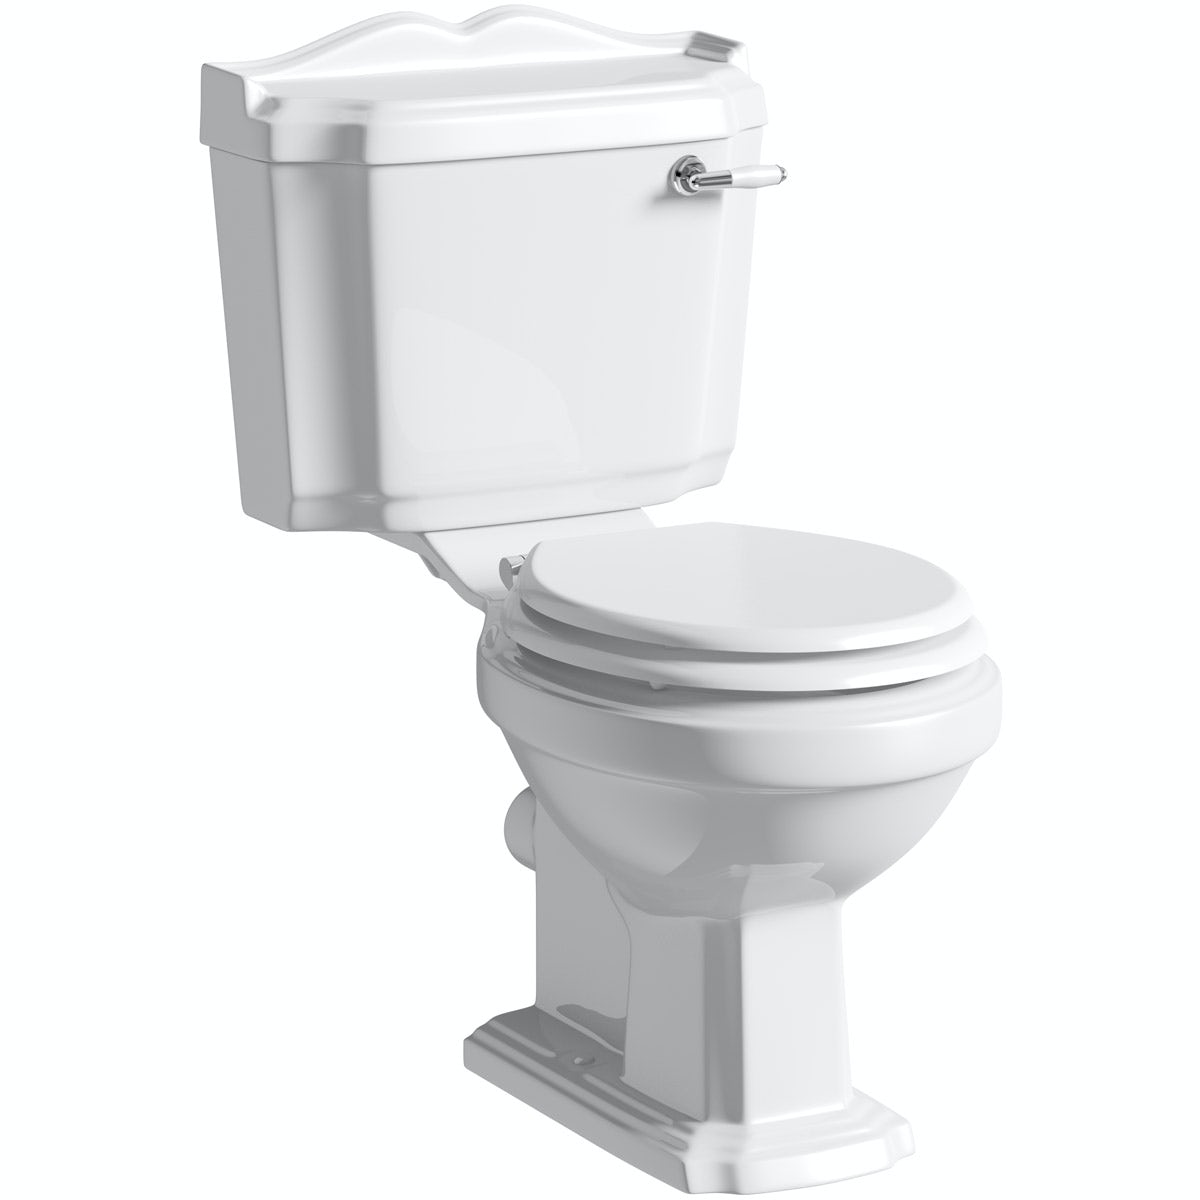 The Bath Co. Winchester close coupled toilet with painted wood seat white